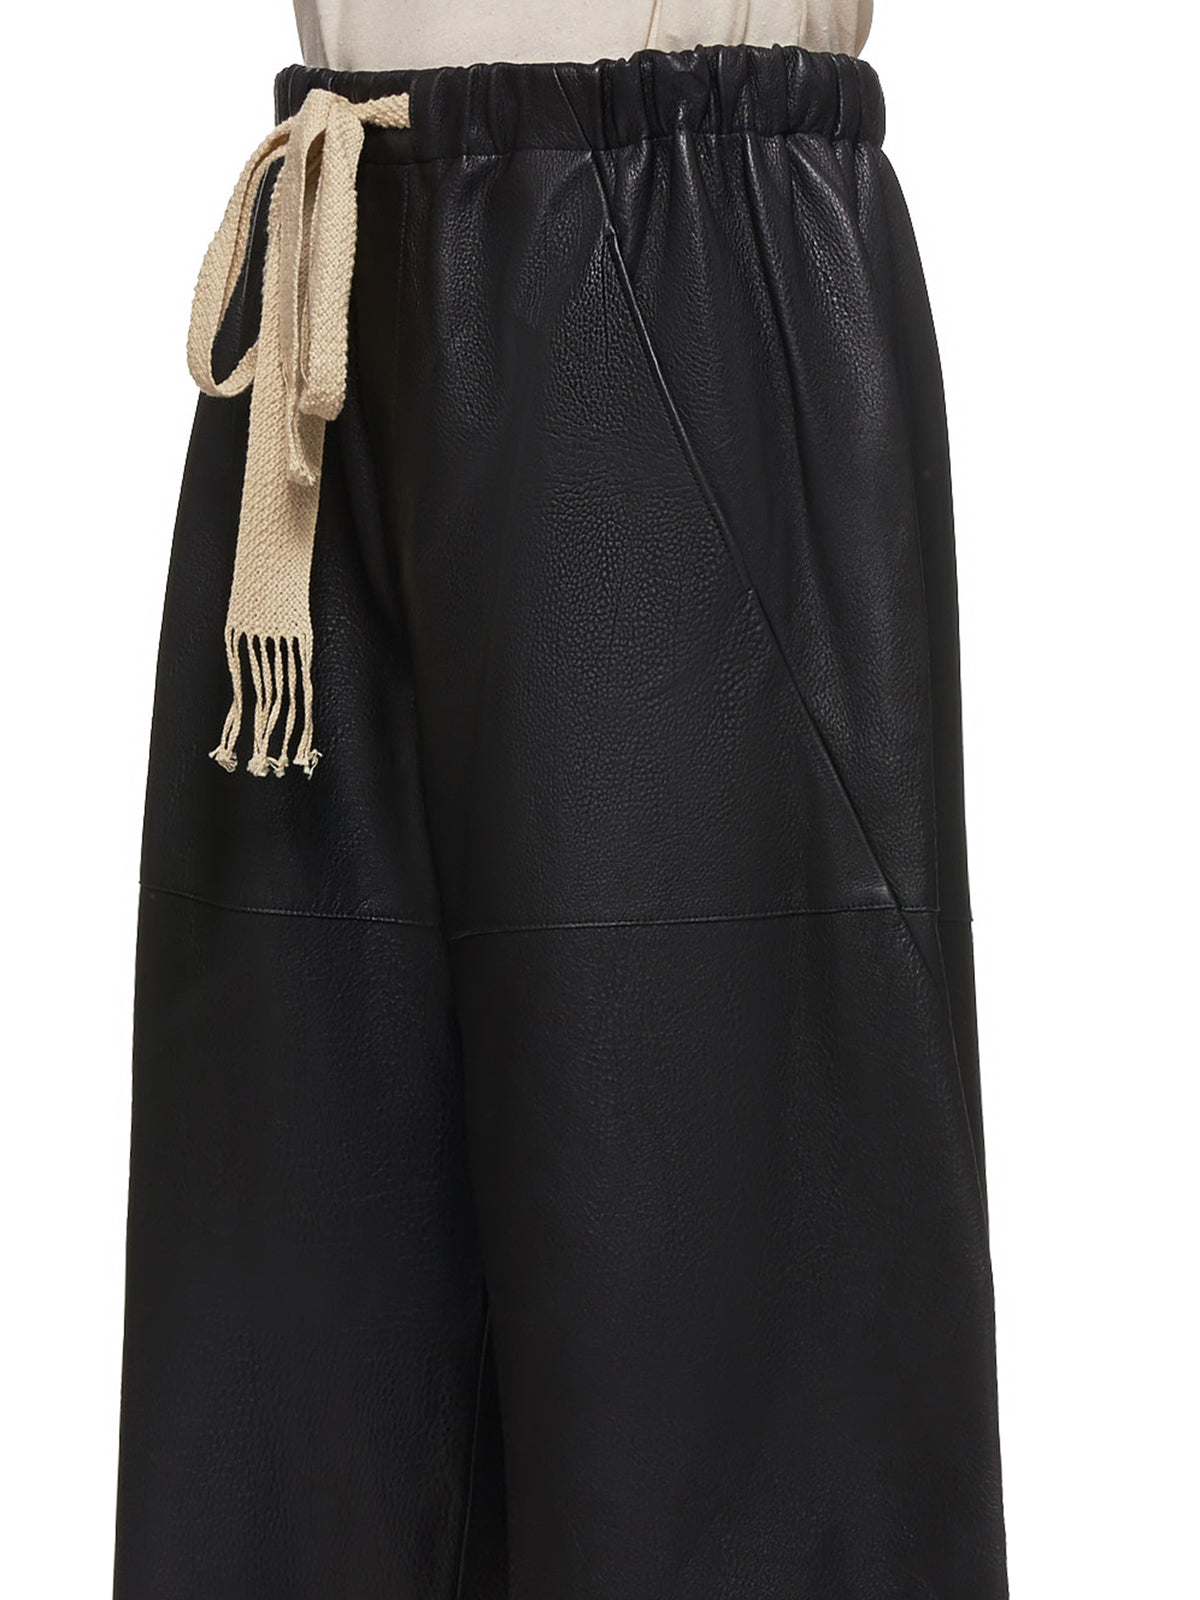 Loewe Leather Shorts - Hlorenzo Detail 2